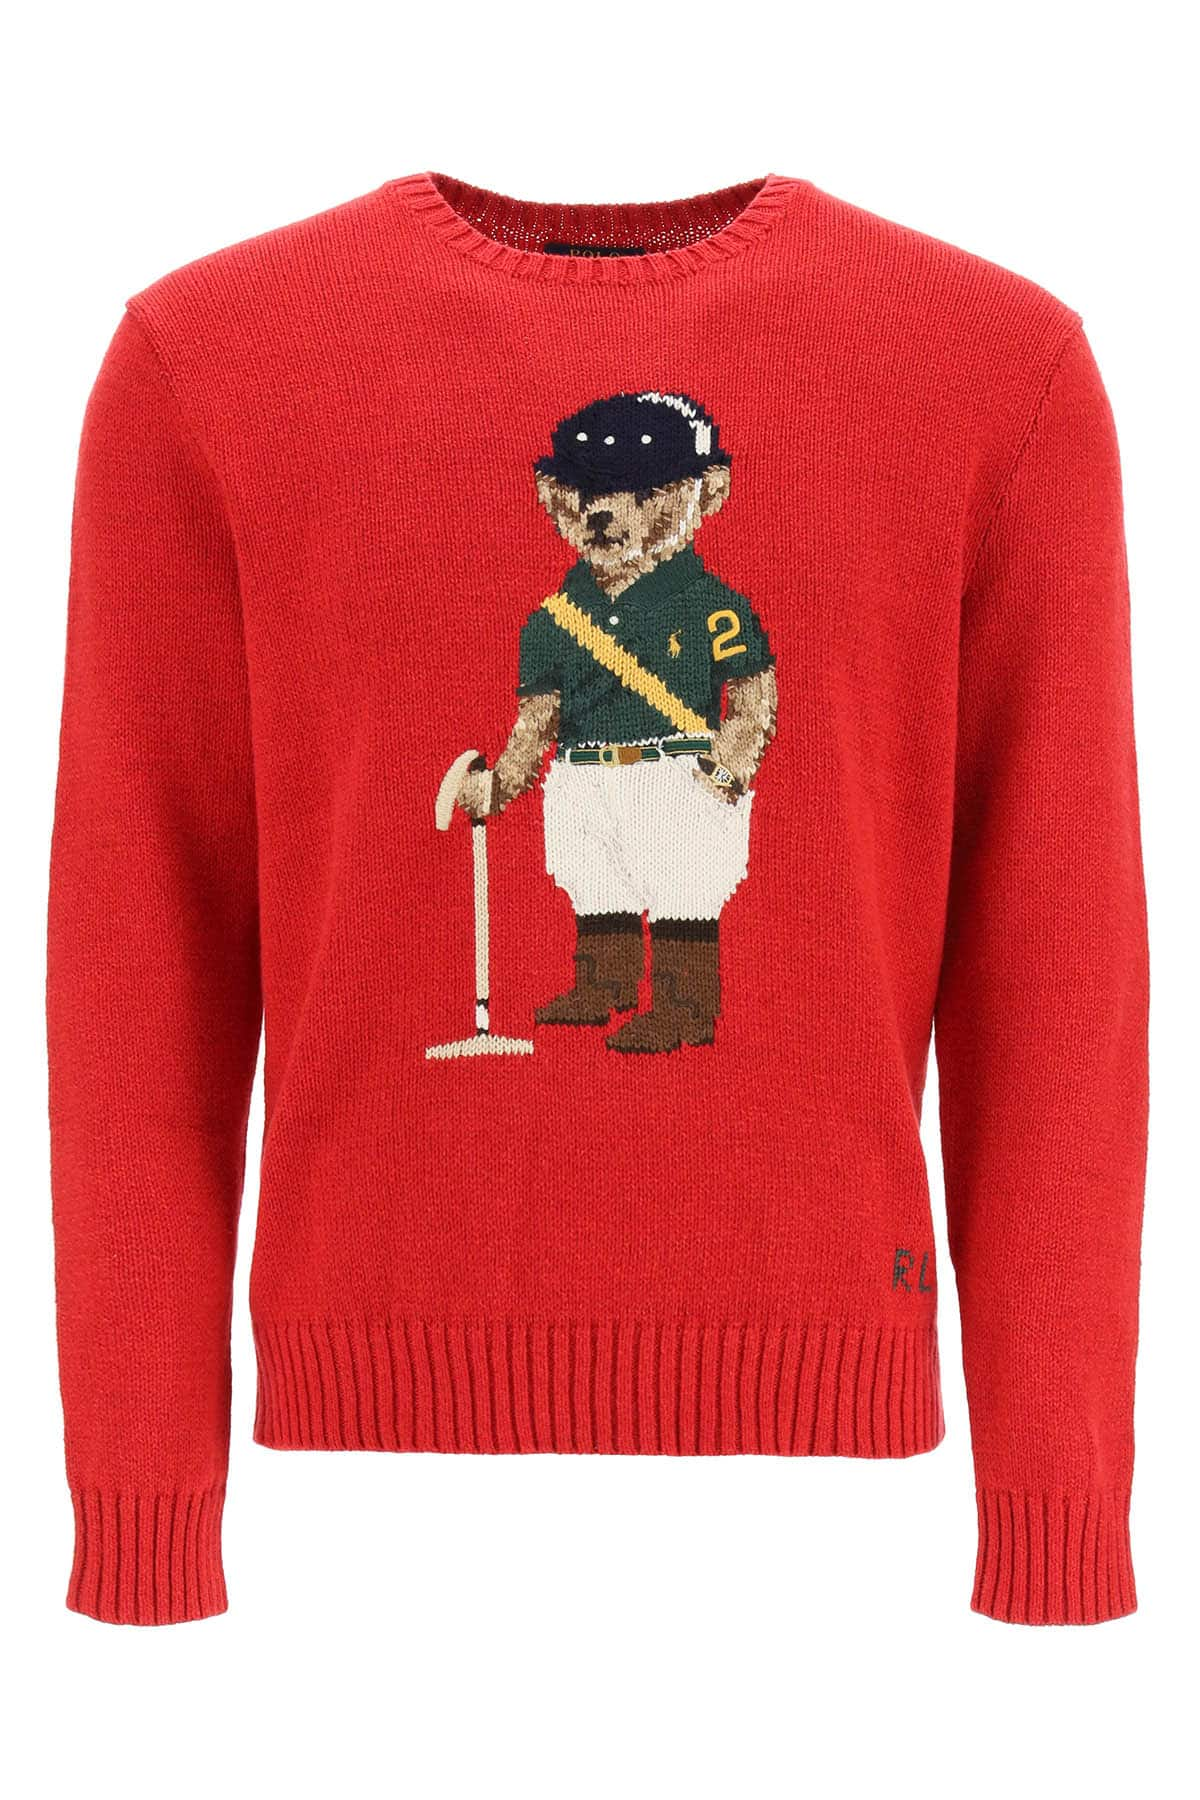 POLO RALPH LAUREN SWEATER POLO PLAYER BEAR S Red, Green, Beige Cotton